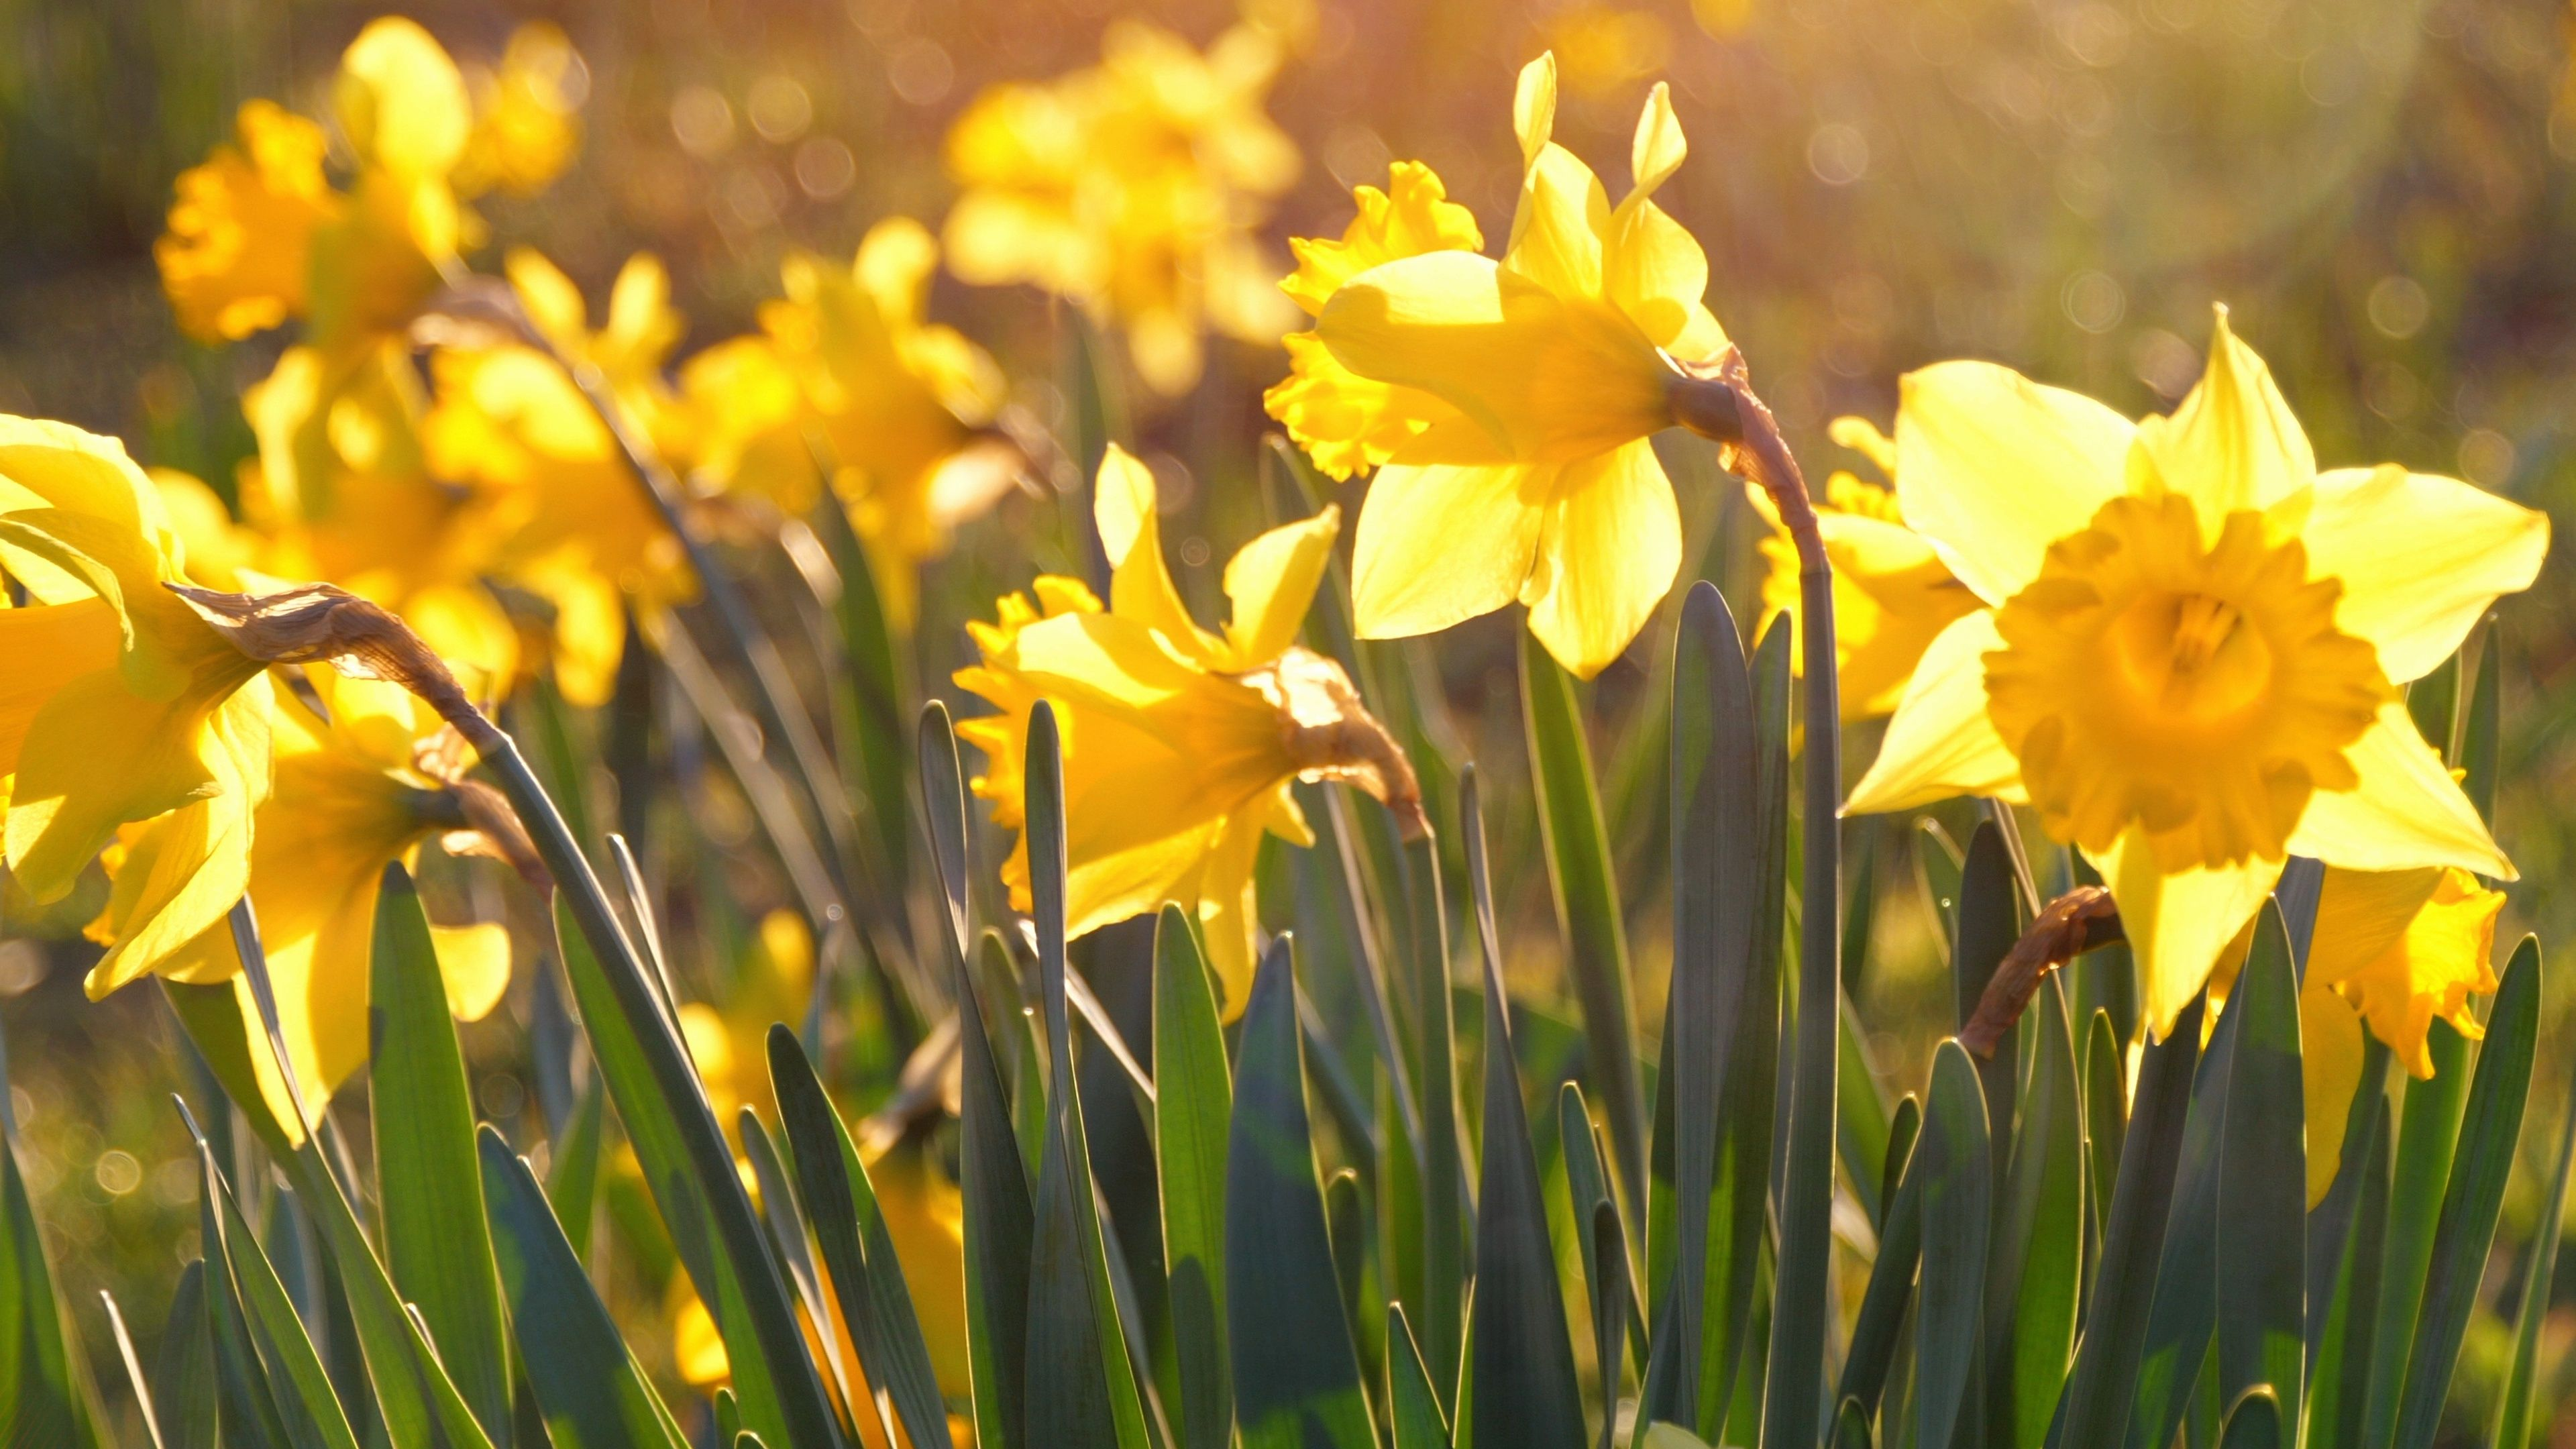 Close Up Daffodils Yellow Field Meadow Easter Flower Nature Slow